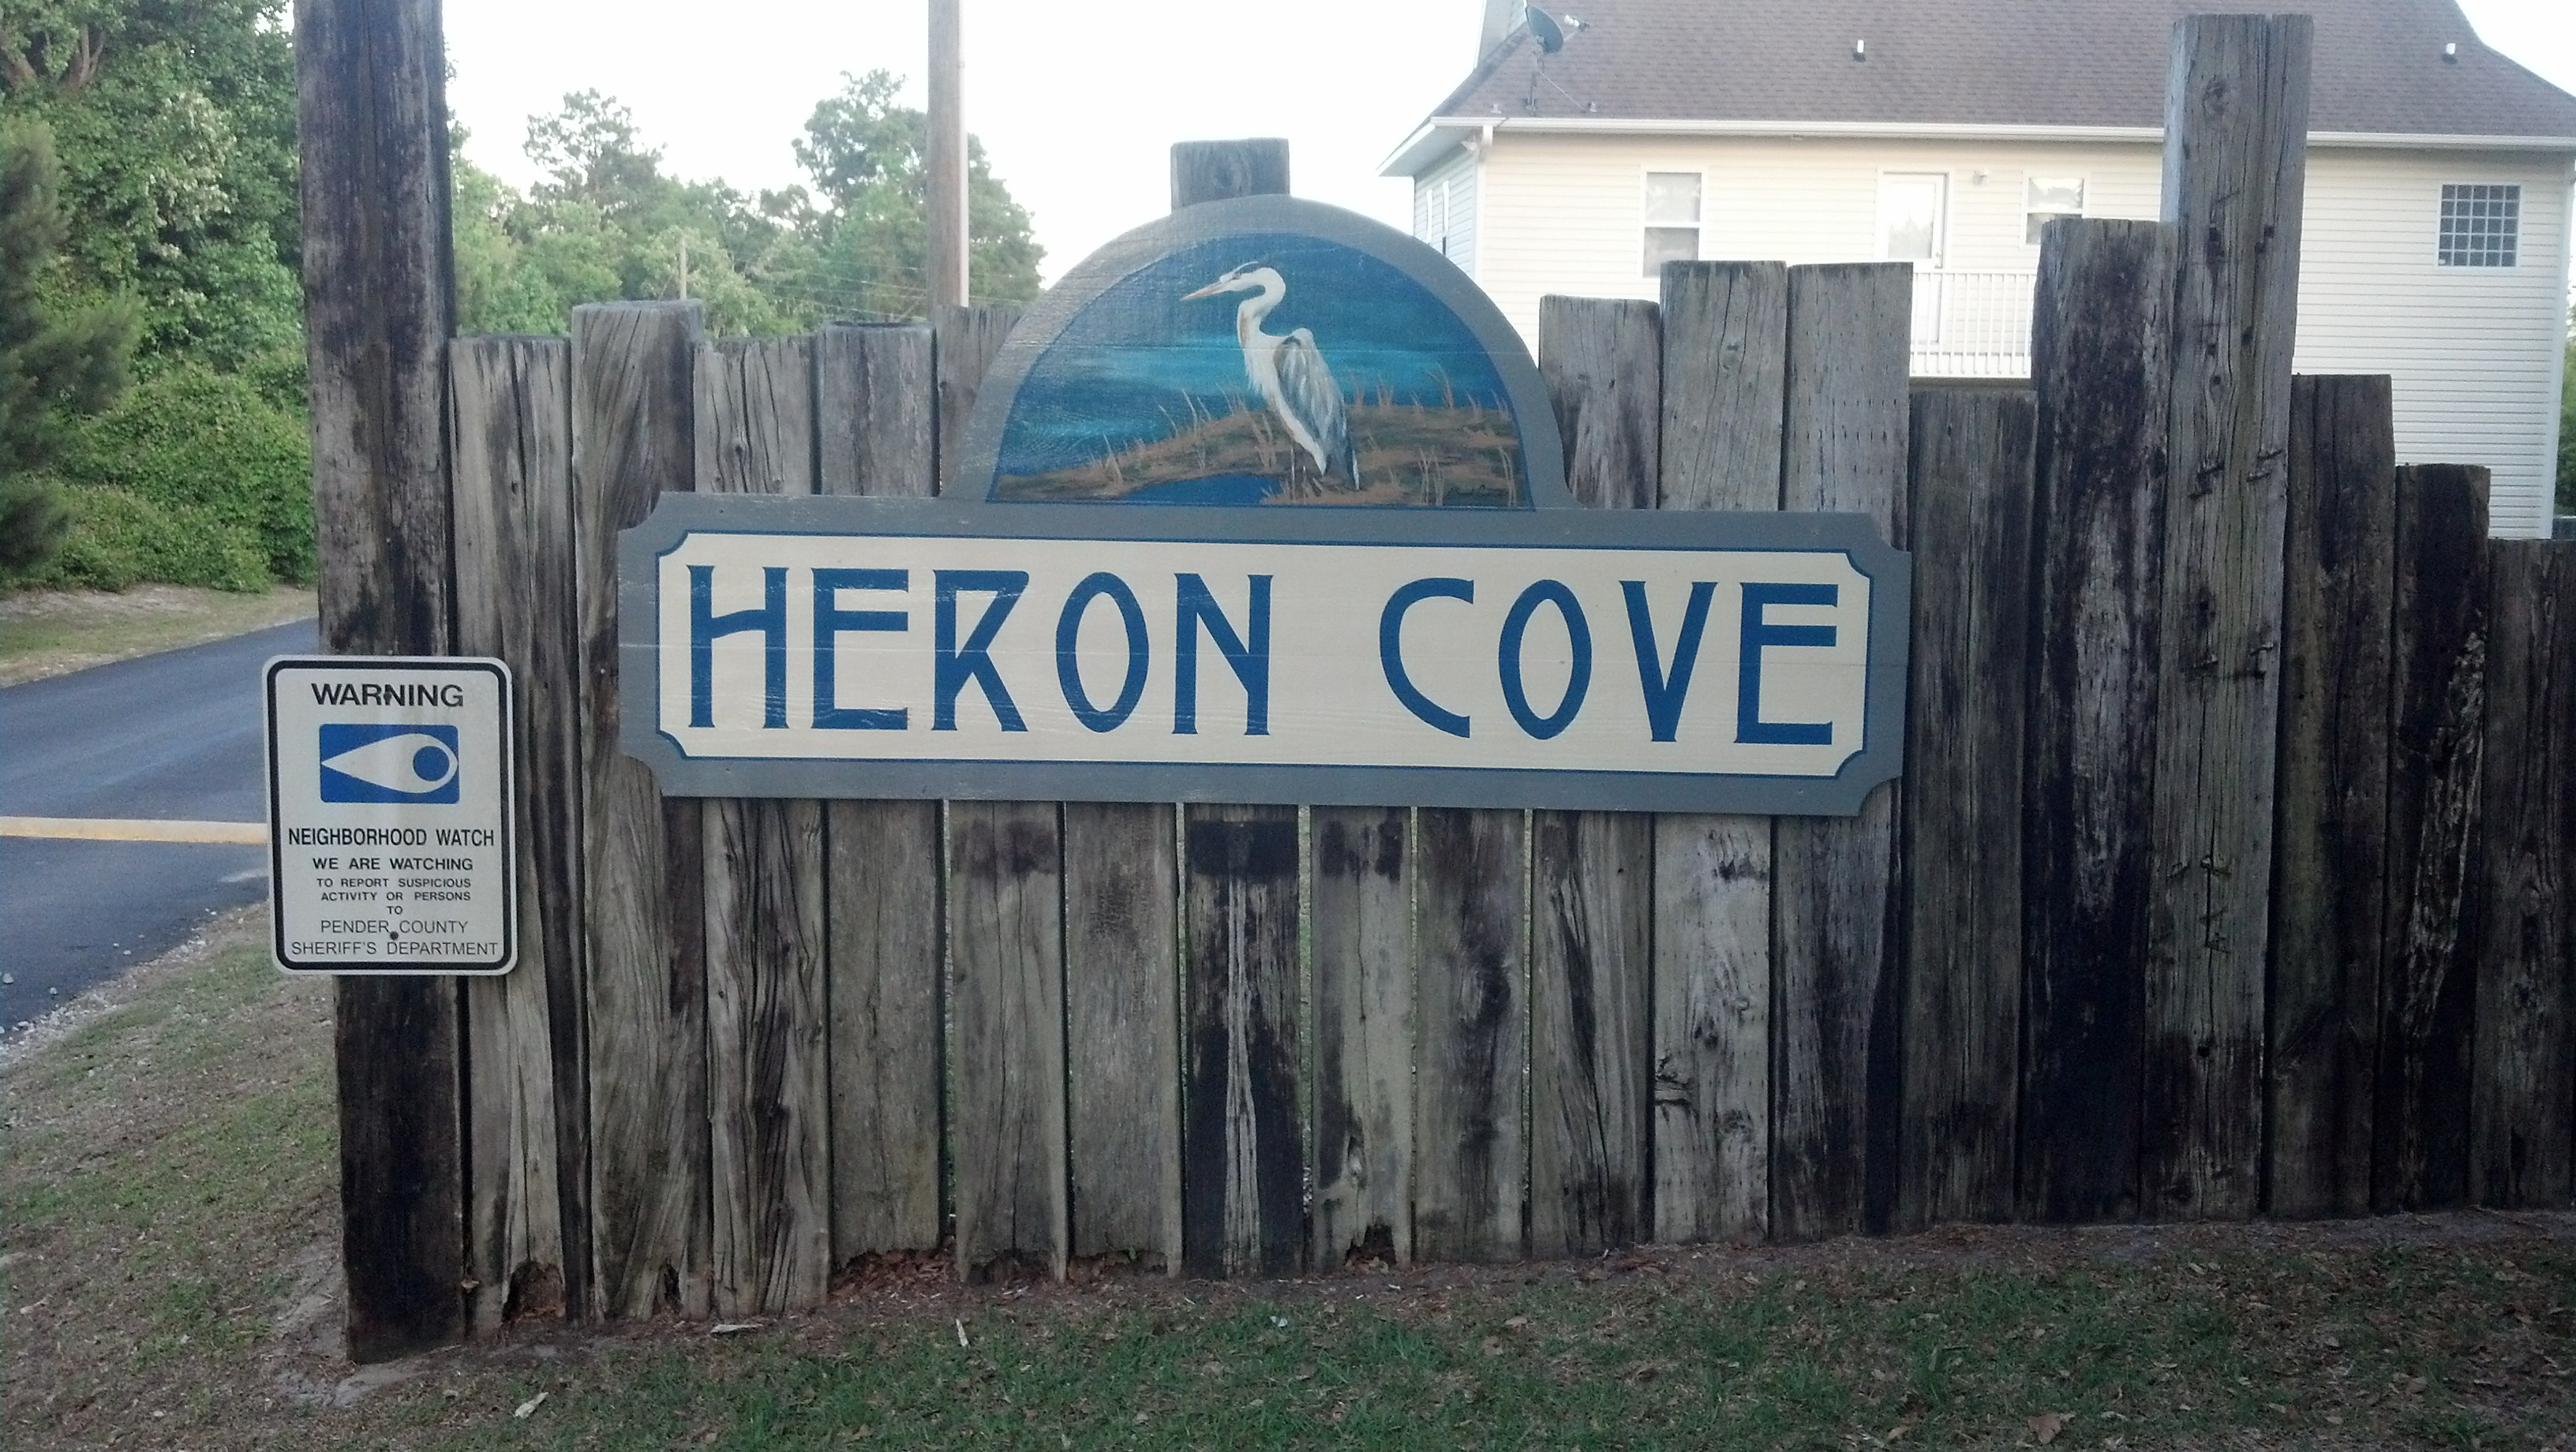 Heron Cove sign by Brandi Criscitiello